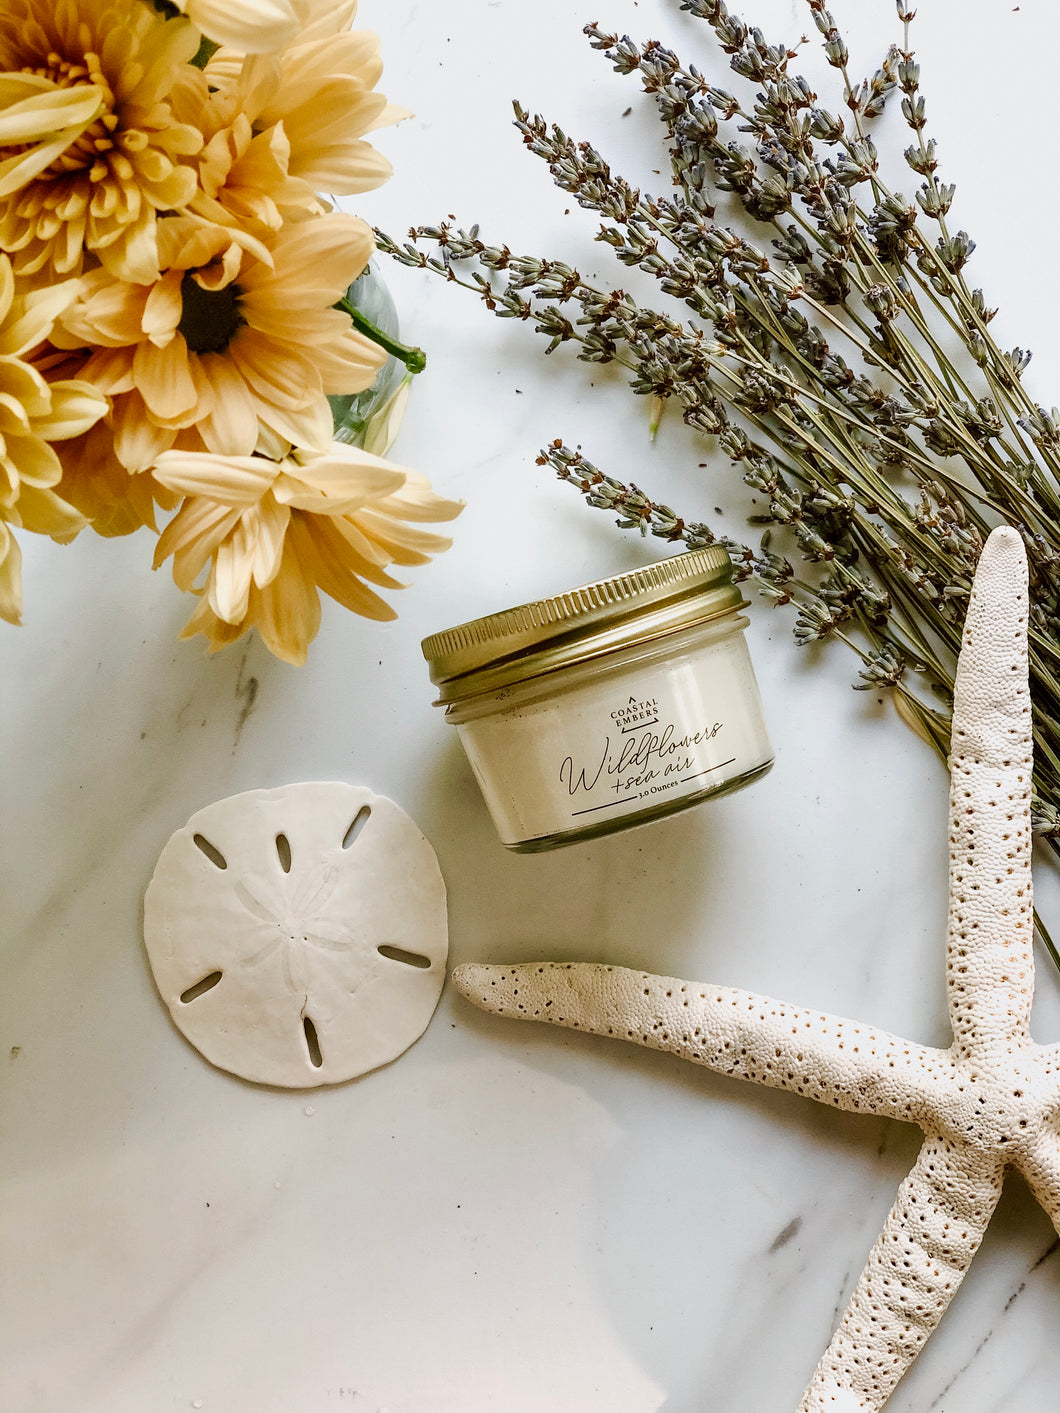 Wildflowers & Sea Air (3 oz)